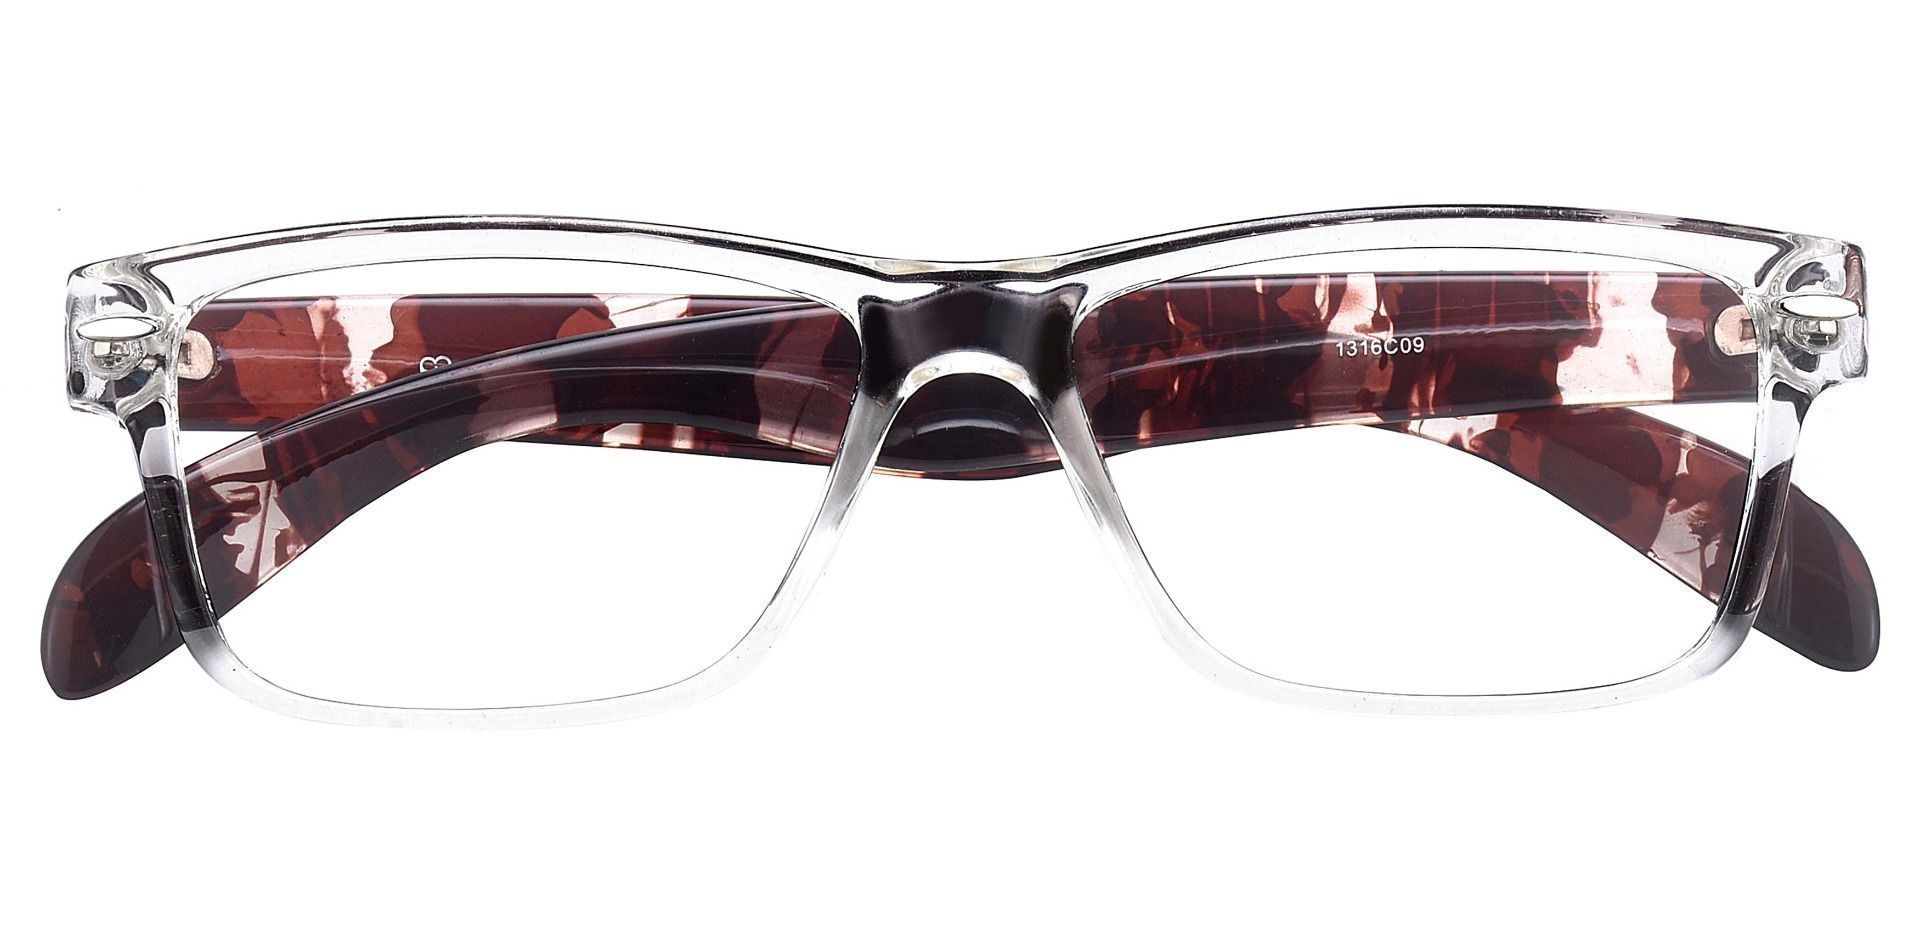 Tate Rectangle Prescription Glasses - The Frame Is Clear And Tortoise